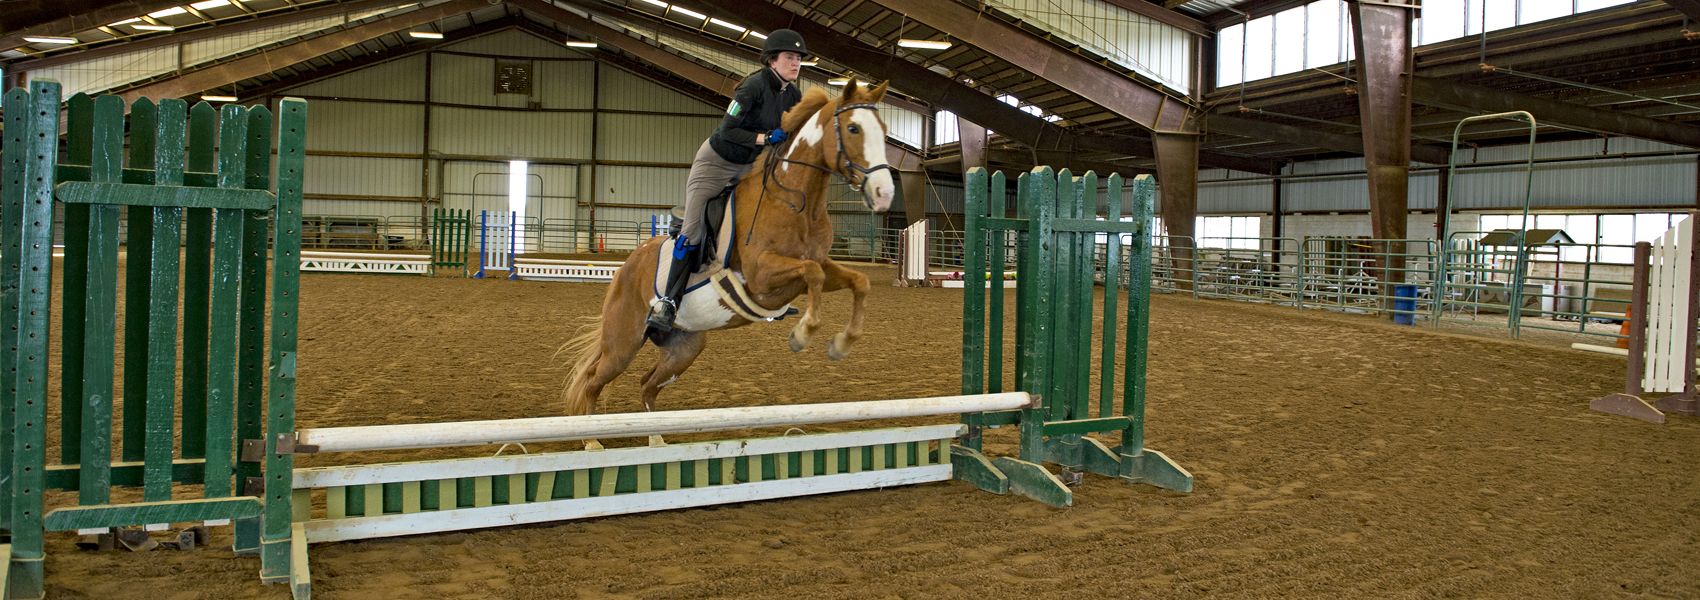 Horse and rider jump over rails on indoor course